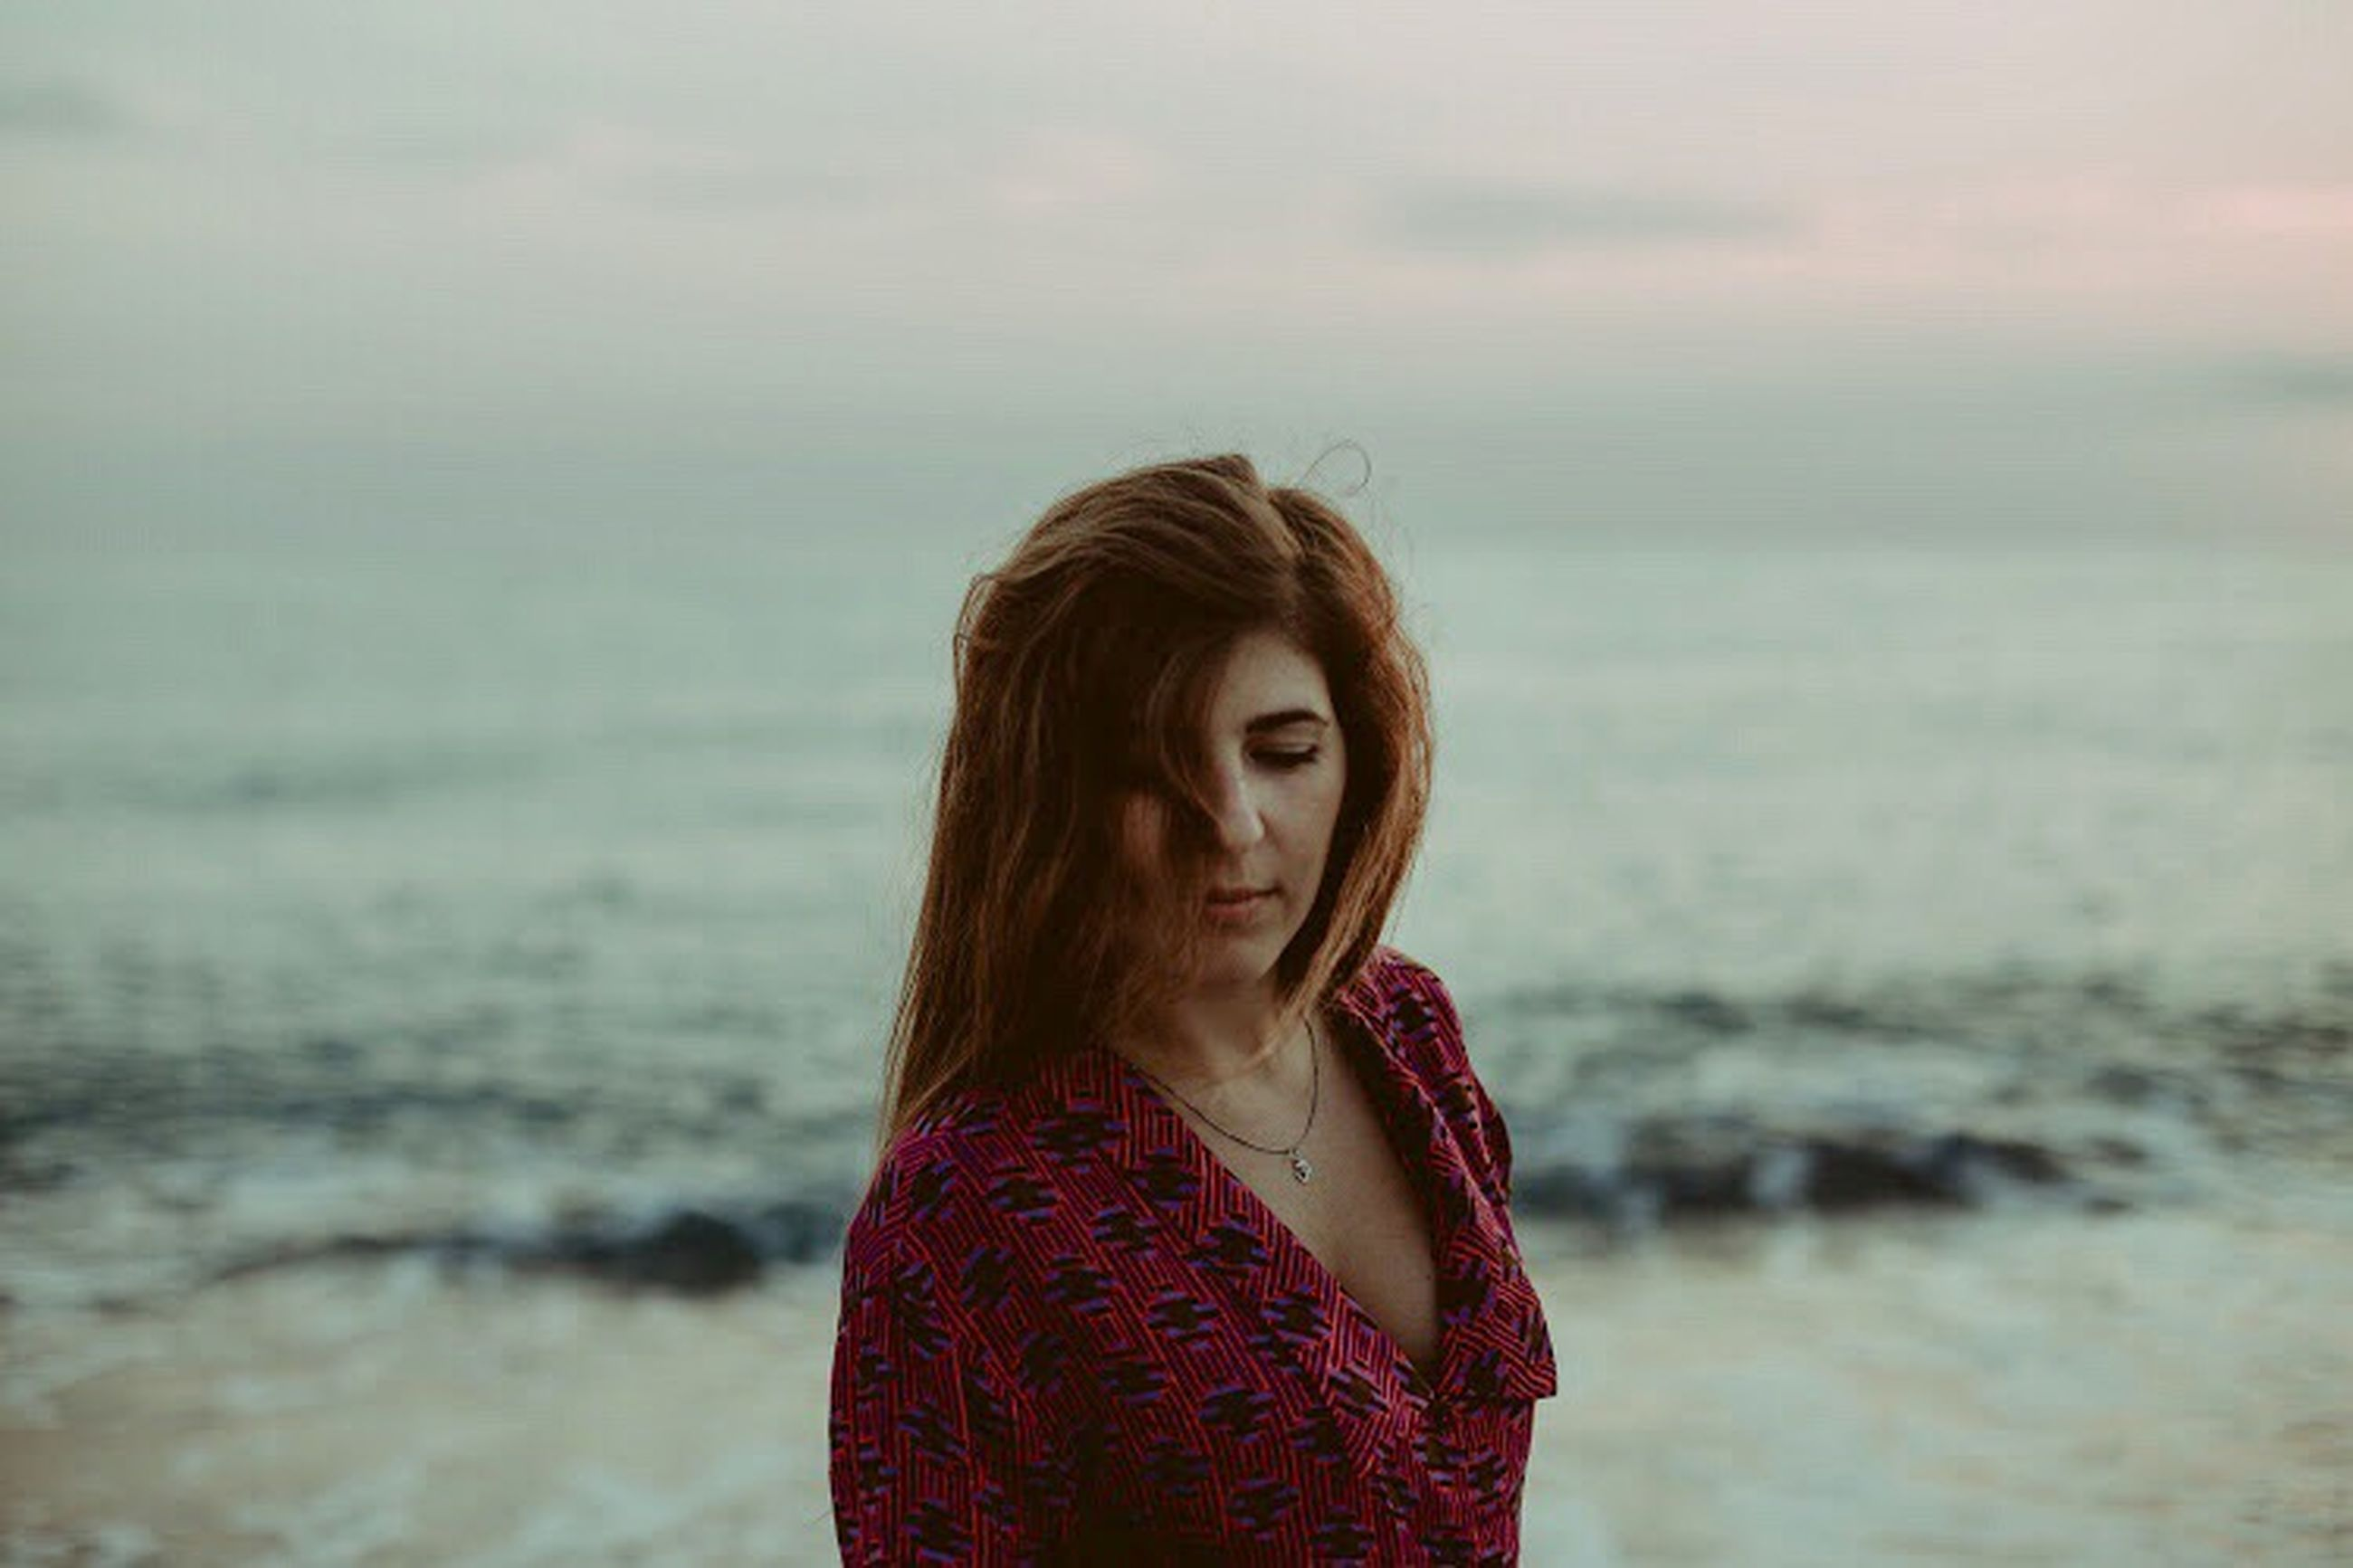 water, sea, one person, portrait, beach, land, beauty, young adult, hairstyle, standing, hair, nature, leisure activity, casual clothing, focus on foreground, brown hair, contemplation, beautiful woman, outdoors